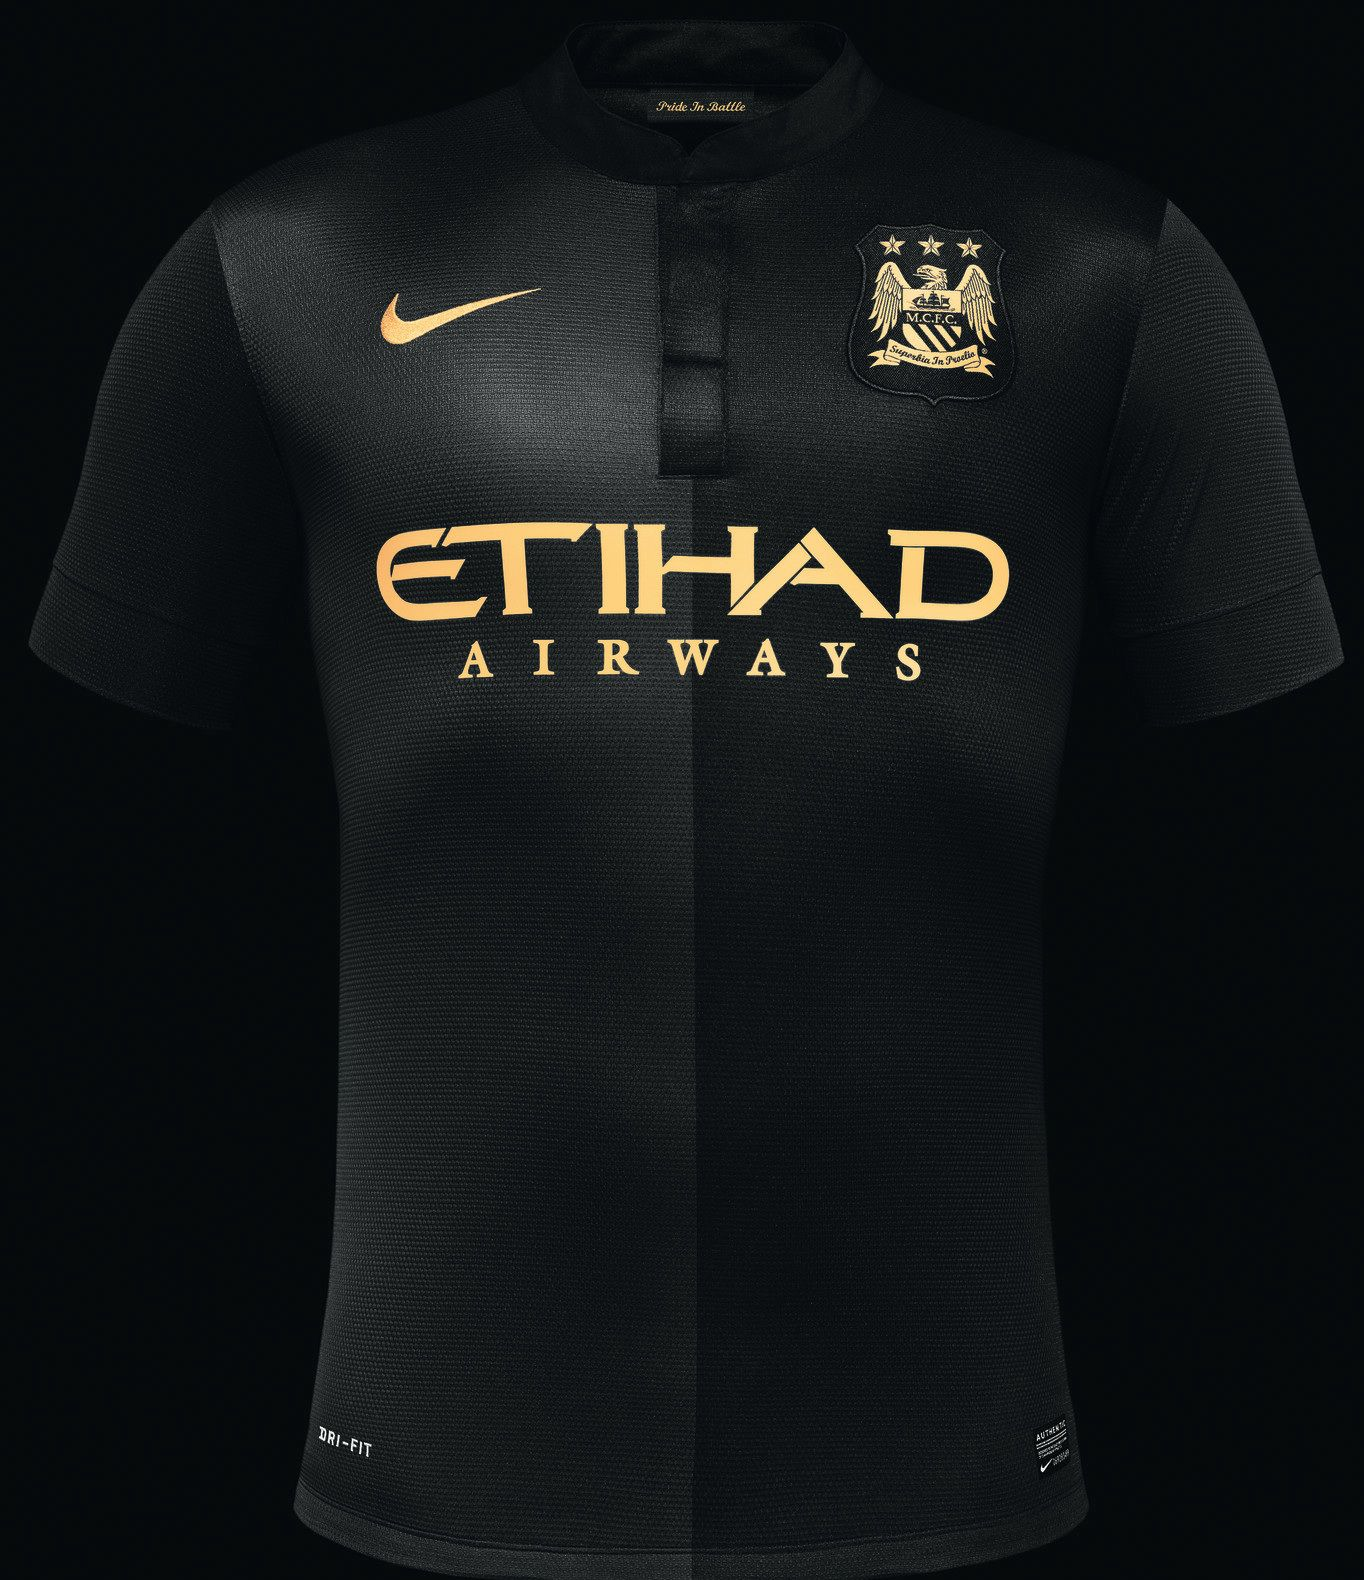 3e7e4b3aa75 Nike Manchester City 2013-2014 Home and Away Kits released